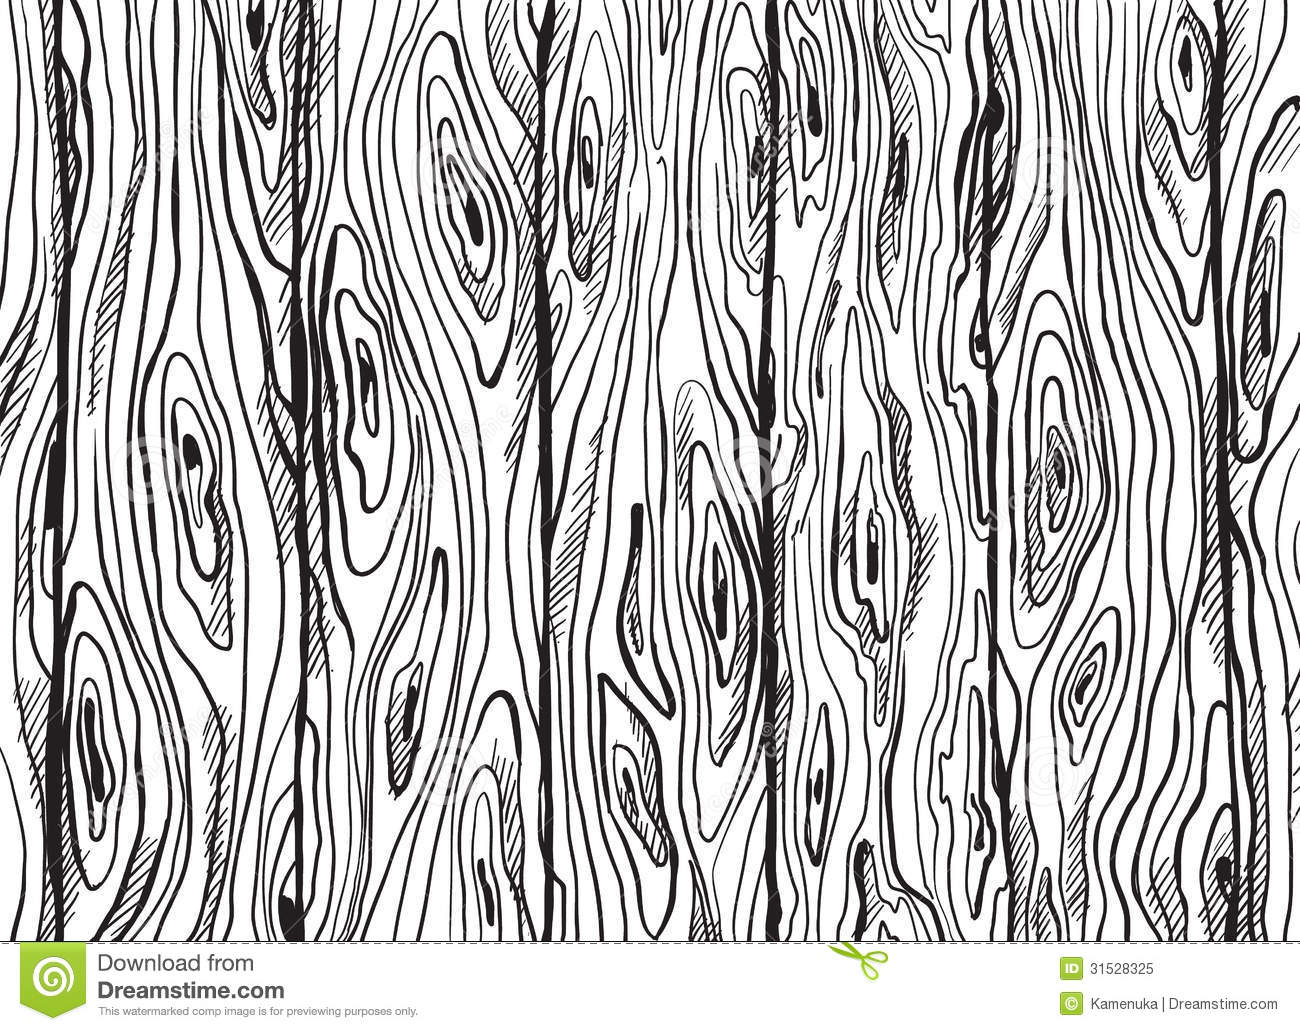 Wood Plank Drawing ~ Hand drawn wooden texture stock vector illustration of